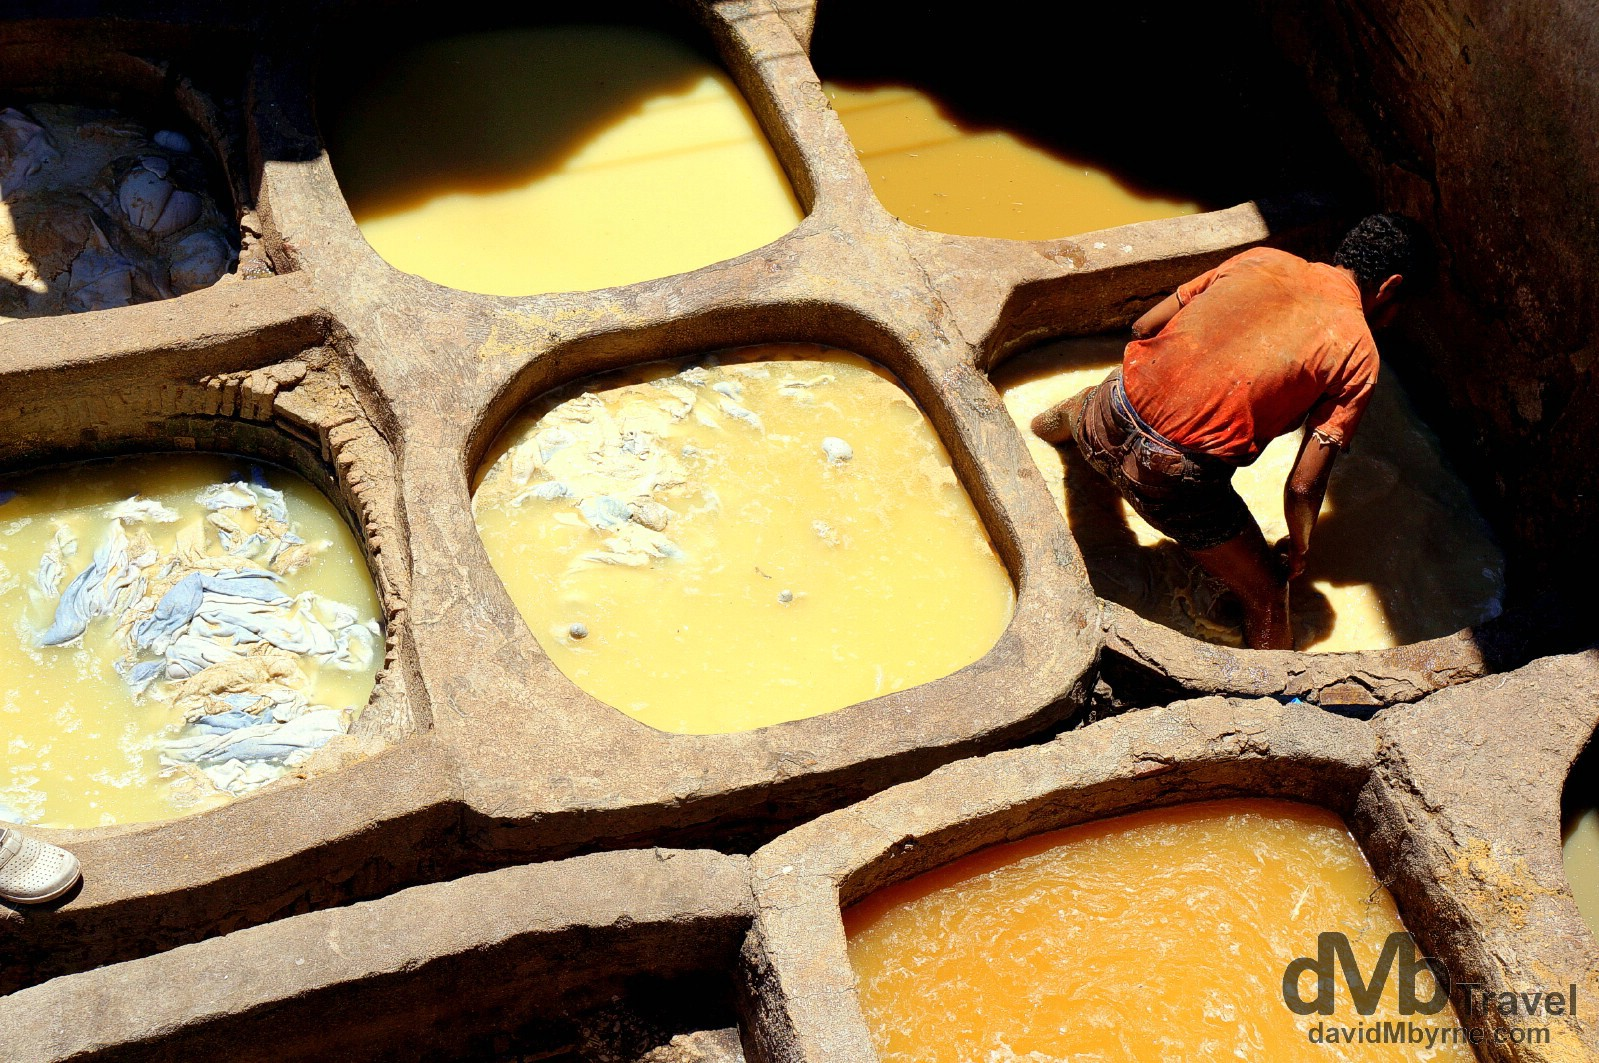 A worker in one of the pits of the Tanneries Chouwara, Fes el Bali, Fes, Morocco. May 29th, 2014.